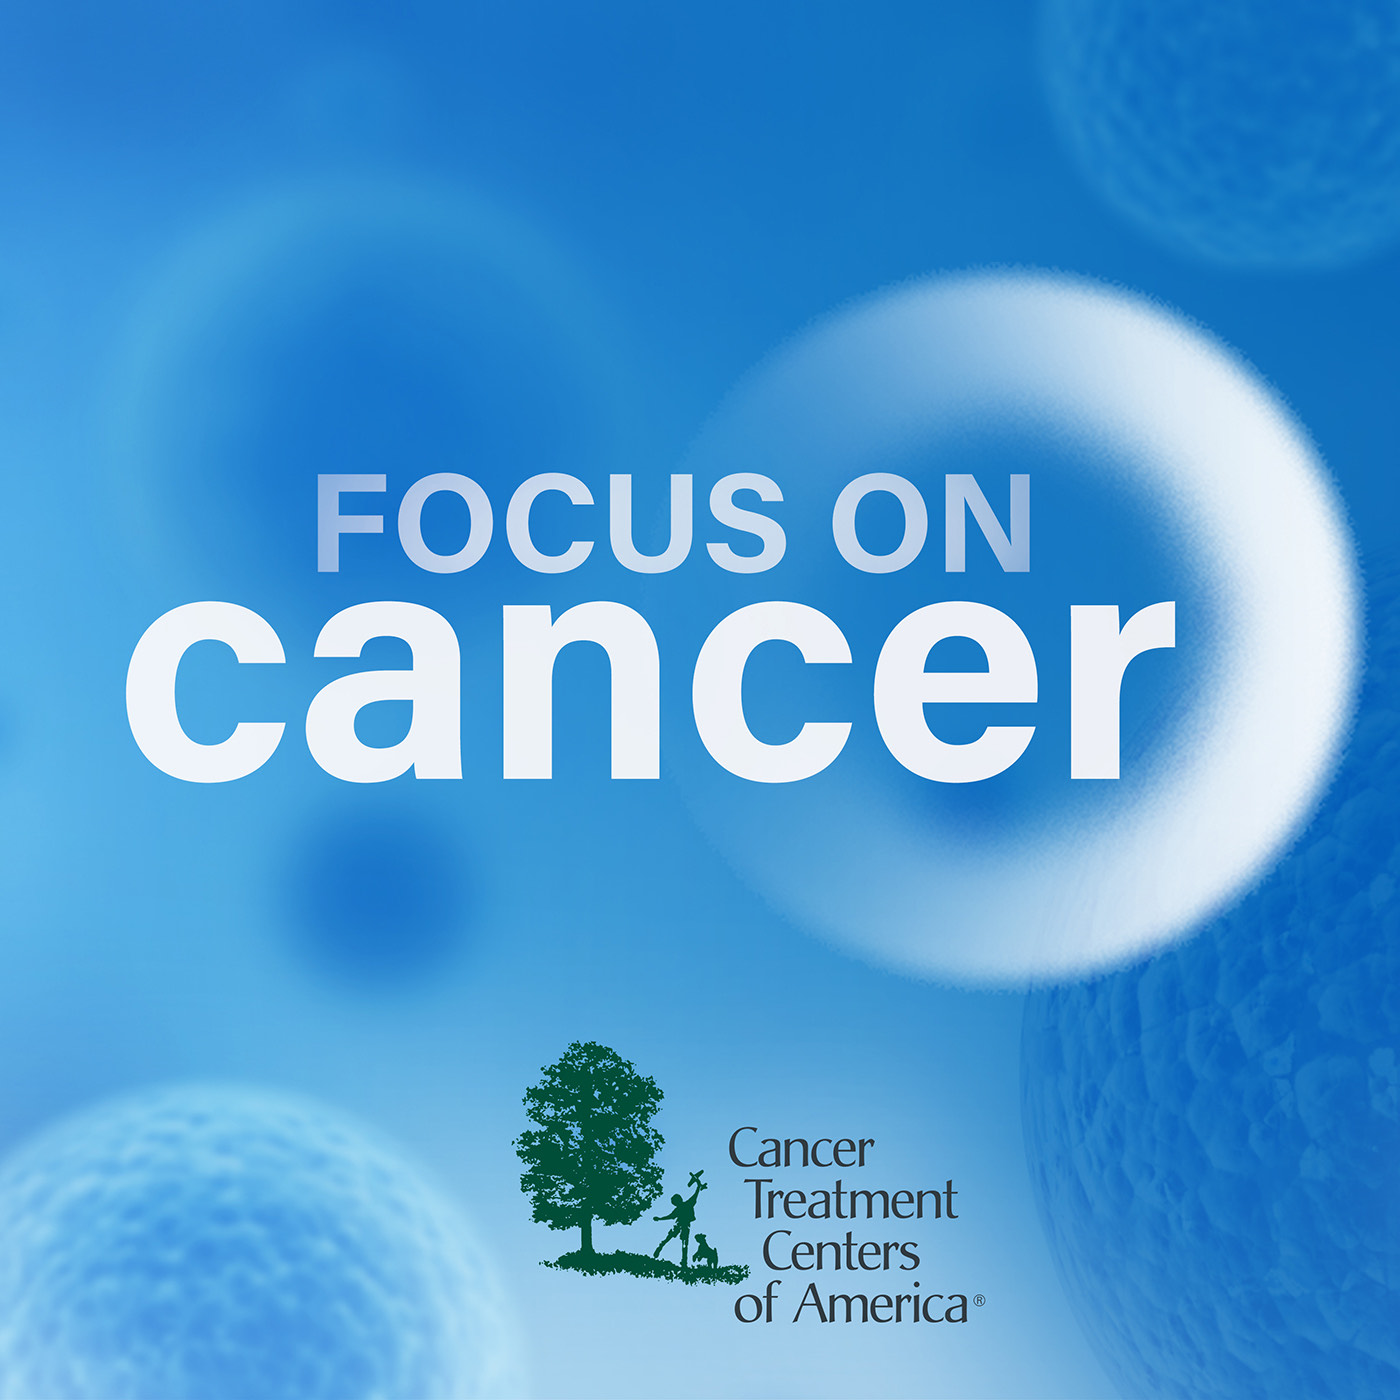 S1E10 | Lung cancer: Advances in screening, treatment saving lives